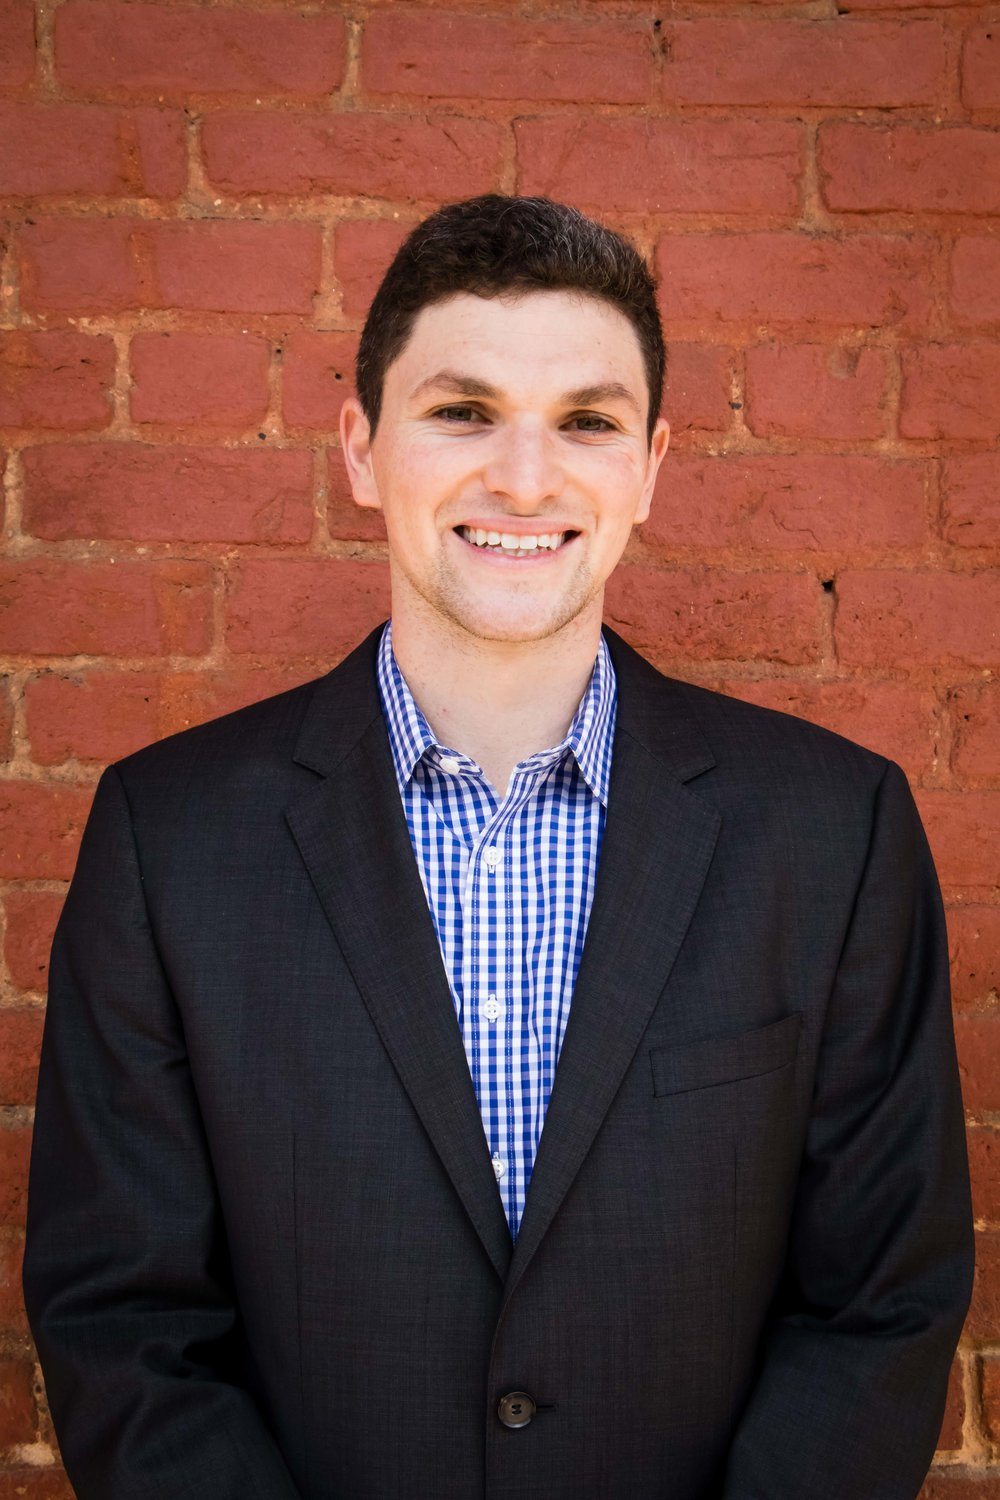 Jeffrey Landau, Director of Business Development  Jeffrey works with clients to develop their bill of materials, model system infrastructure, and determine appropriate HVAC needs. He obtained his BSc in Mechanical Engineering from the Georgia Institute of Technology. While at Georgia Tech he completed a one-year Co-Op with Delta Air Lines and volunteered extensively with urban agricultural non-profit organizations in Atlanta. In Australia, he further participated in WWOOFing and developed a keen interest in solving current and future food production problems.   LinkedIn